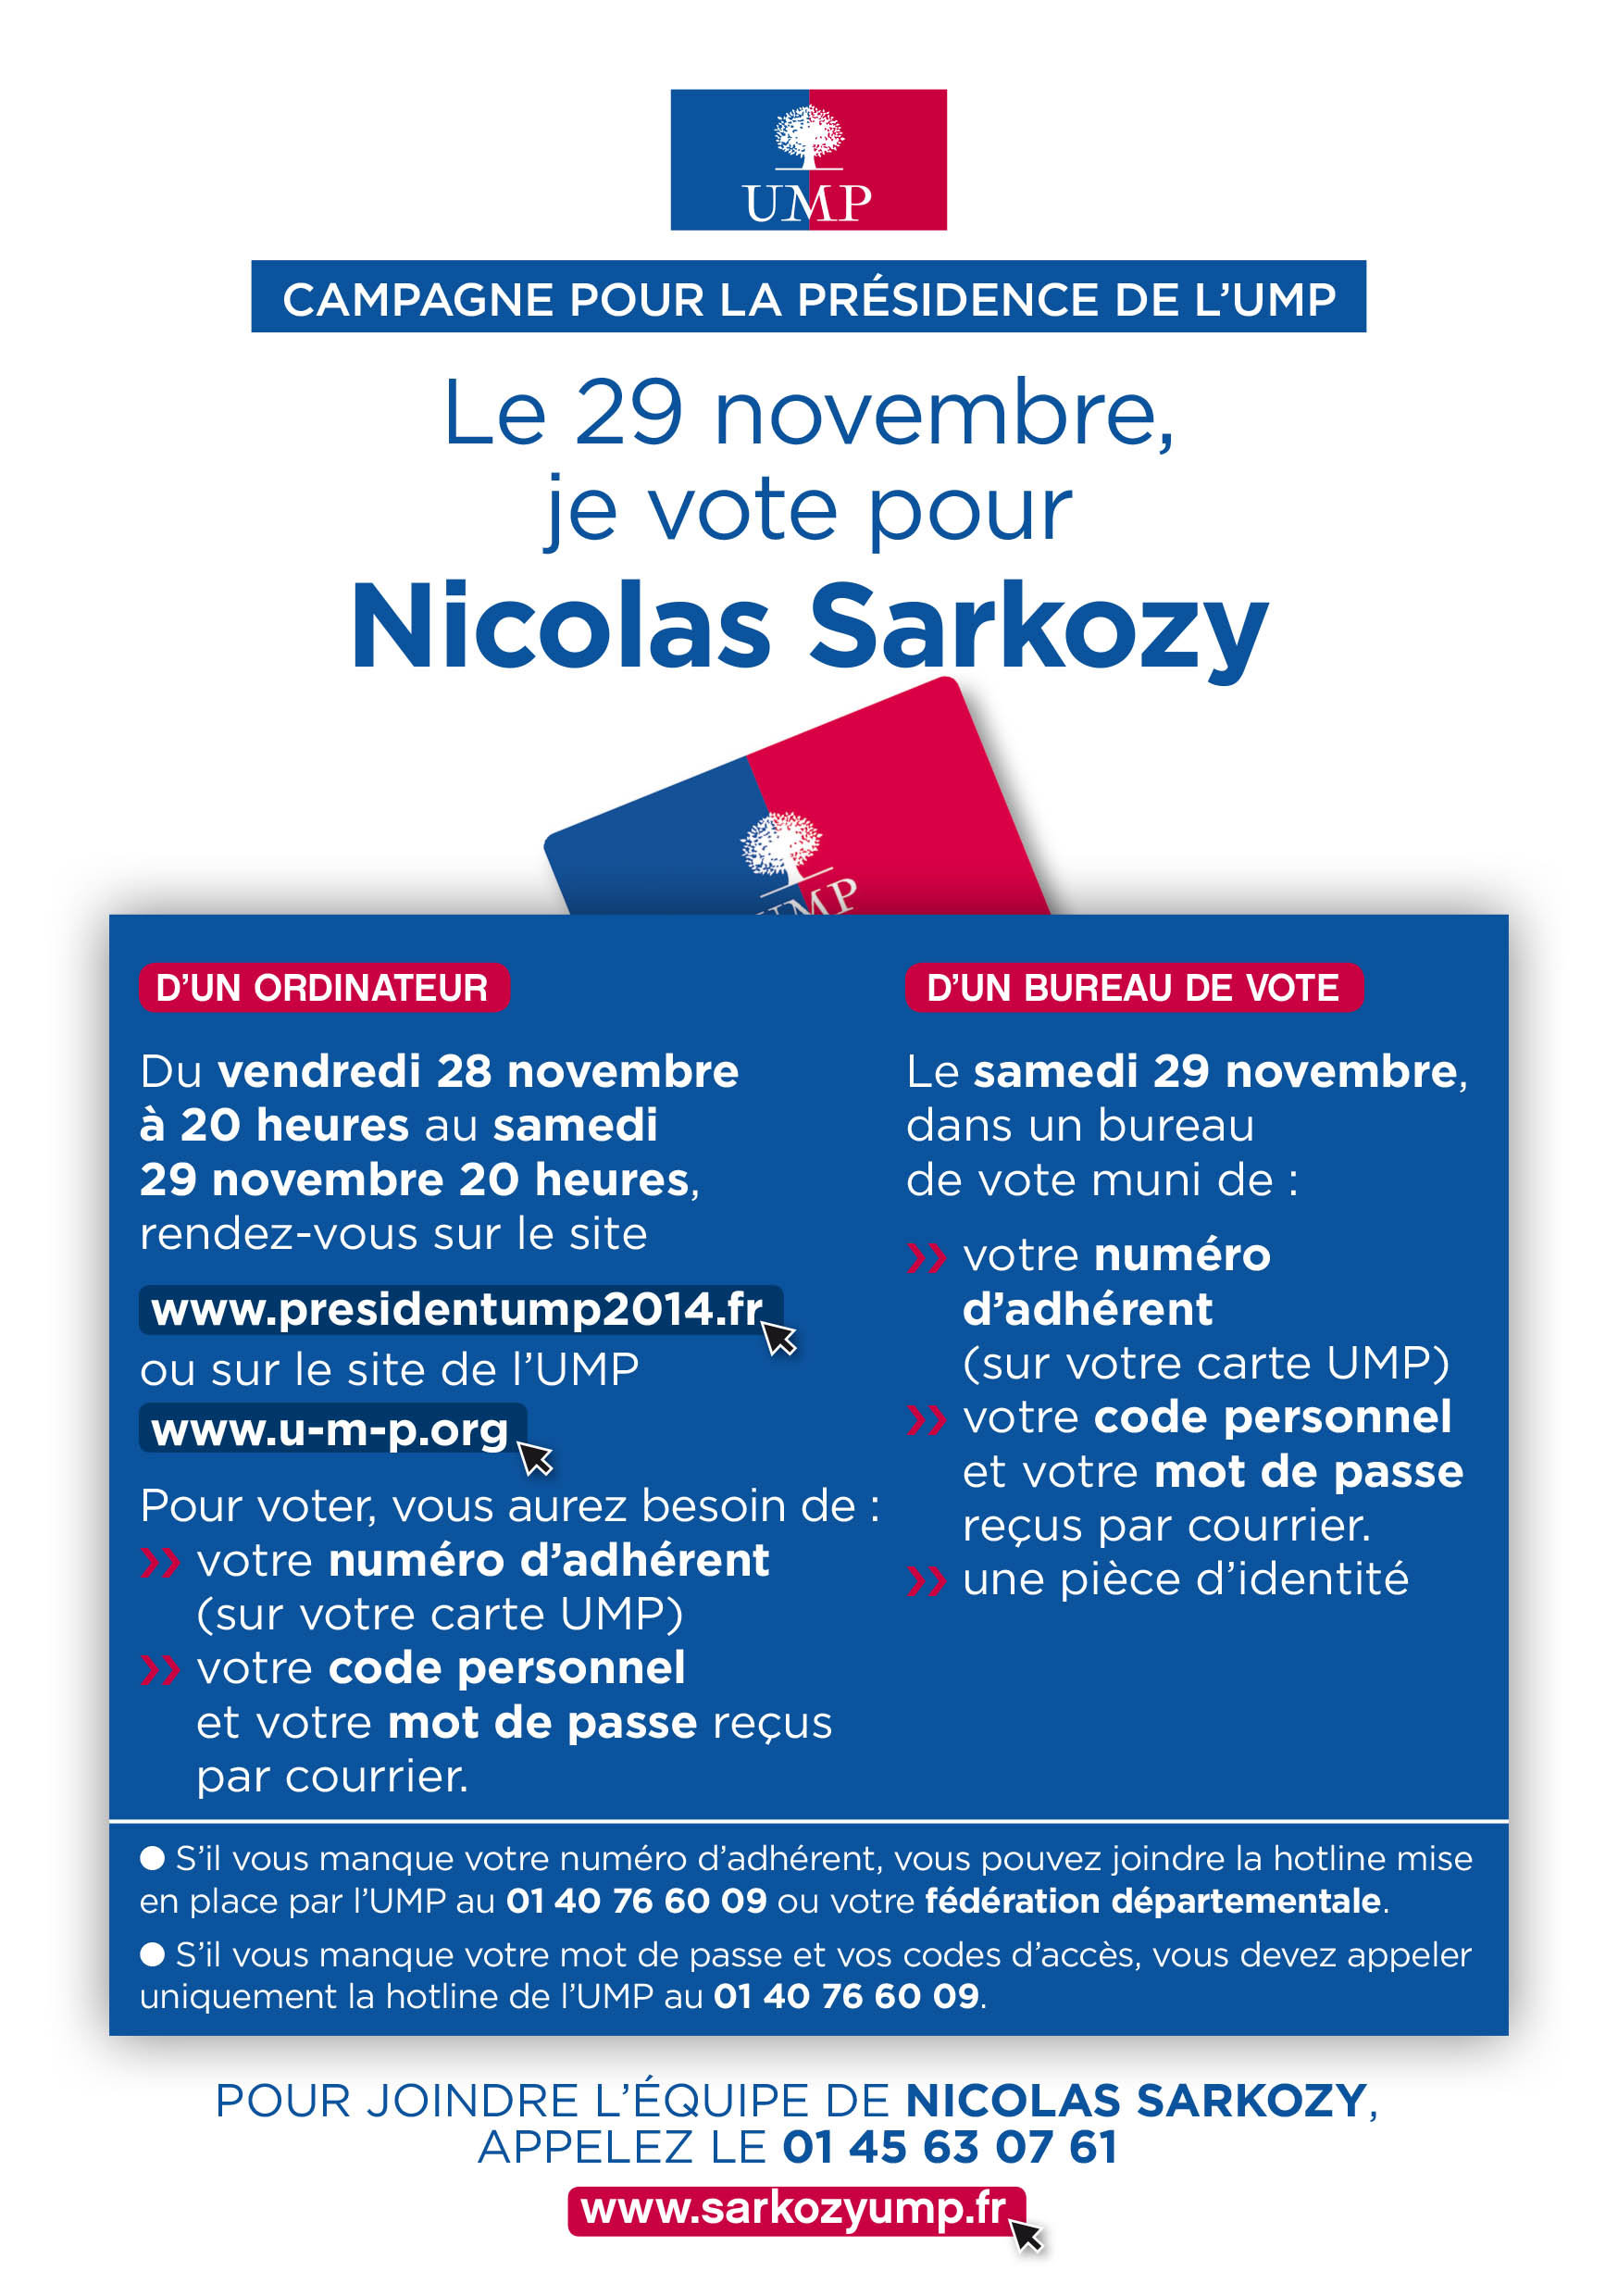 pr sidence de l ump comment voter pour nicolas sarkozy. Black Bedroom Furniture Sets. Home Design Ideas